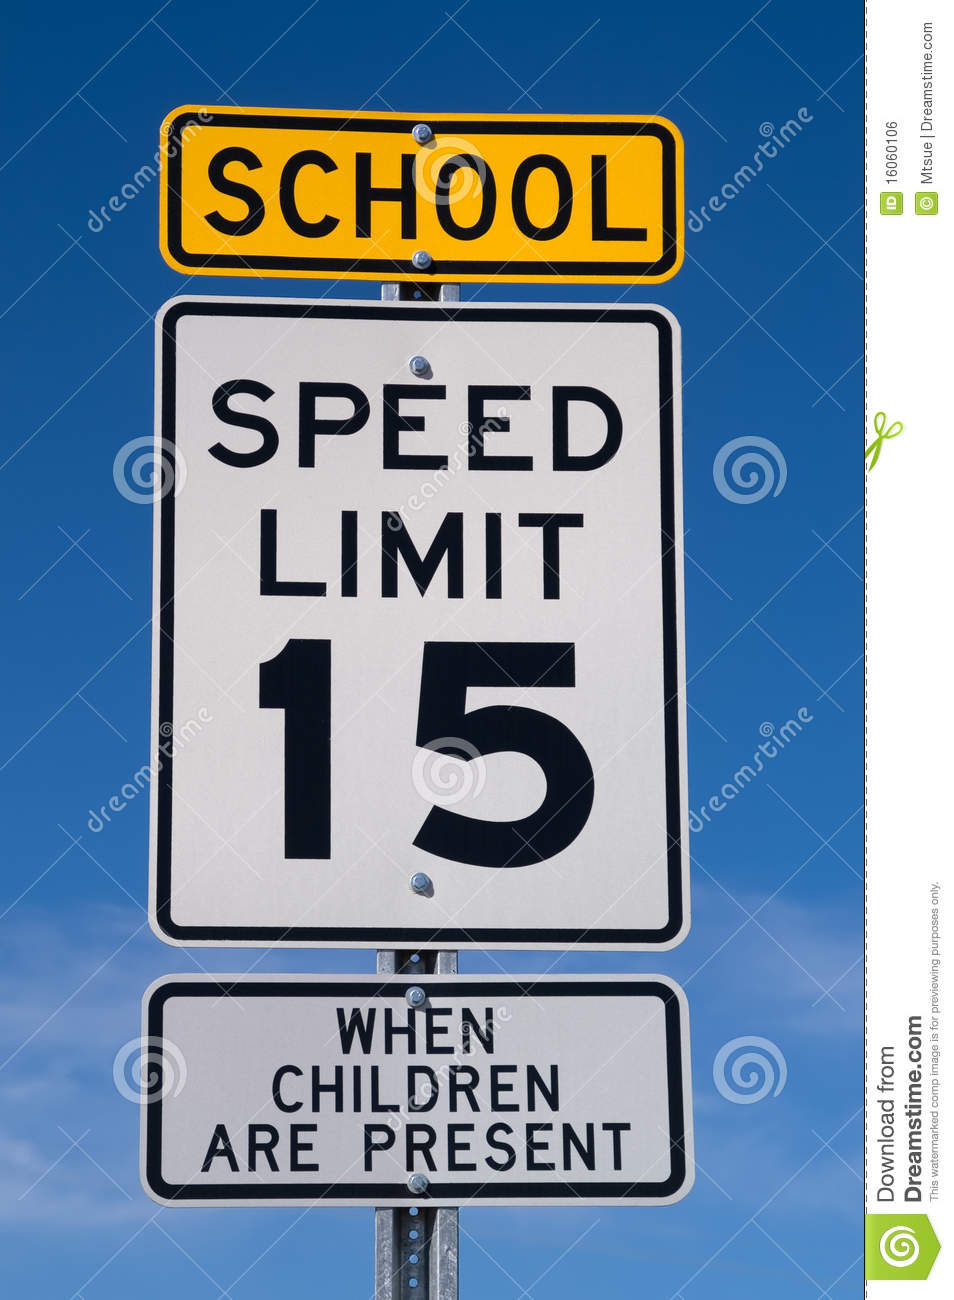 School Speed Limit Sign Royalty Free Stock Image - Image: 16060106